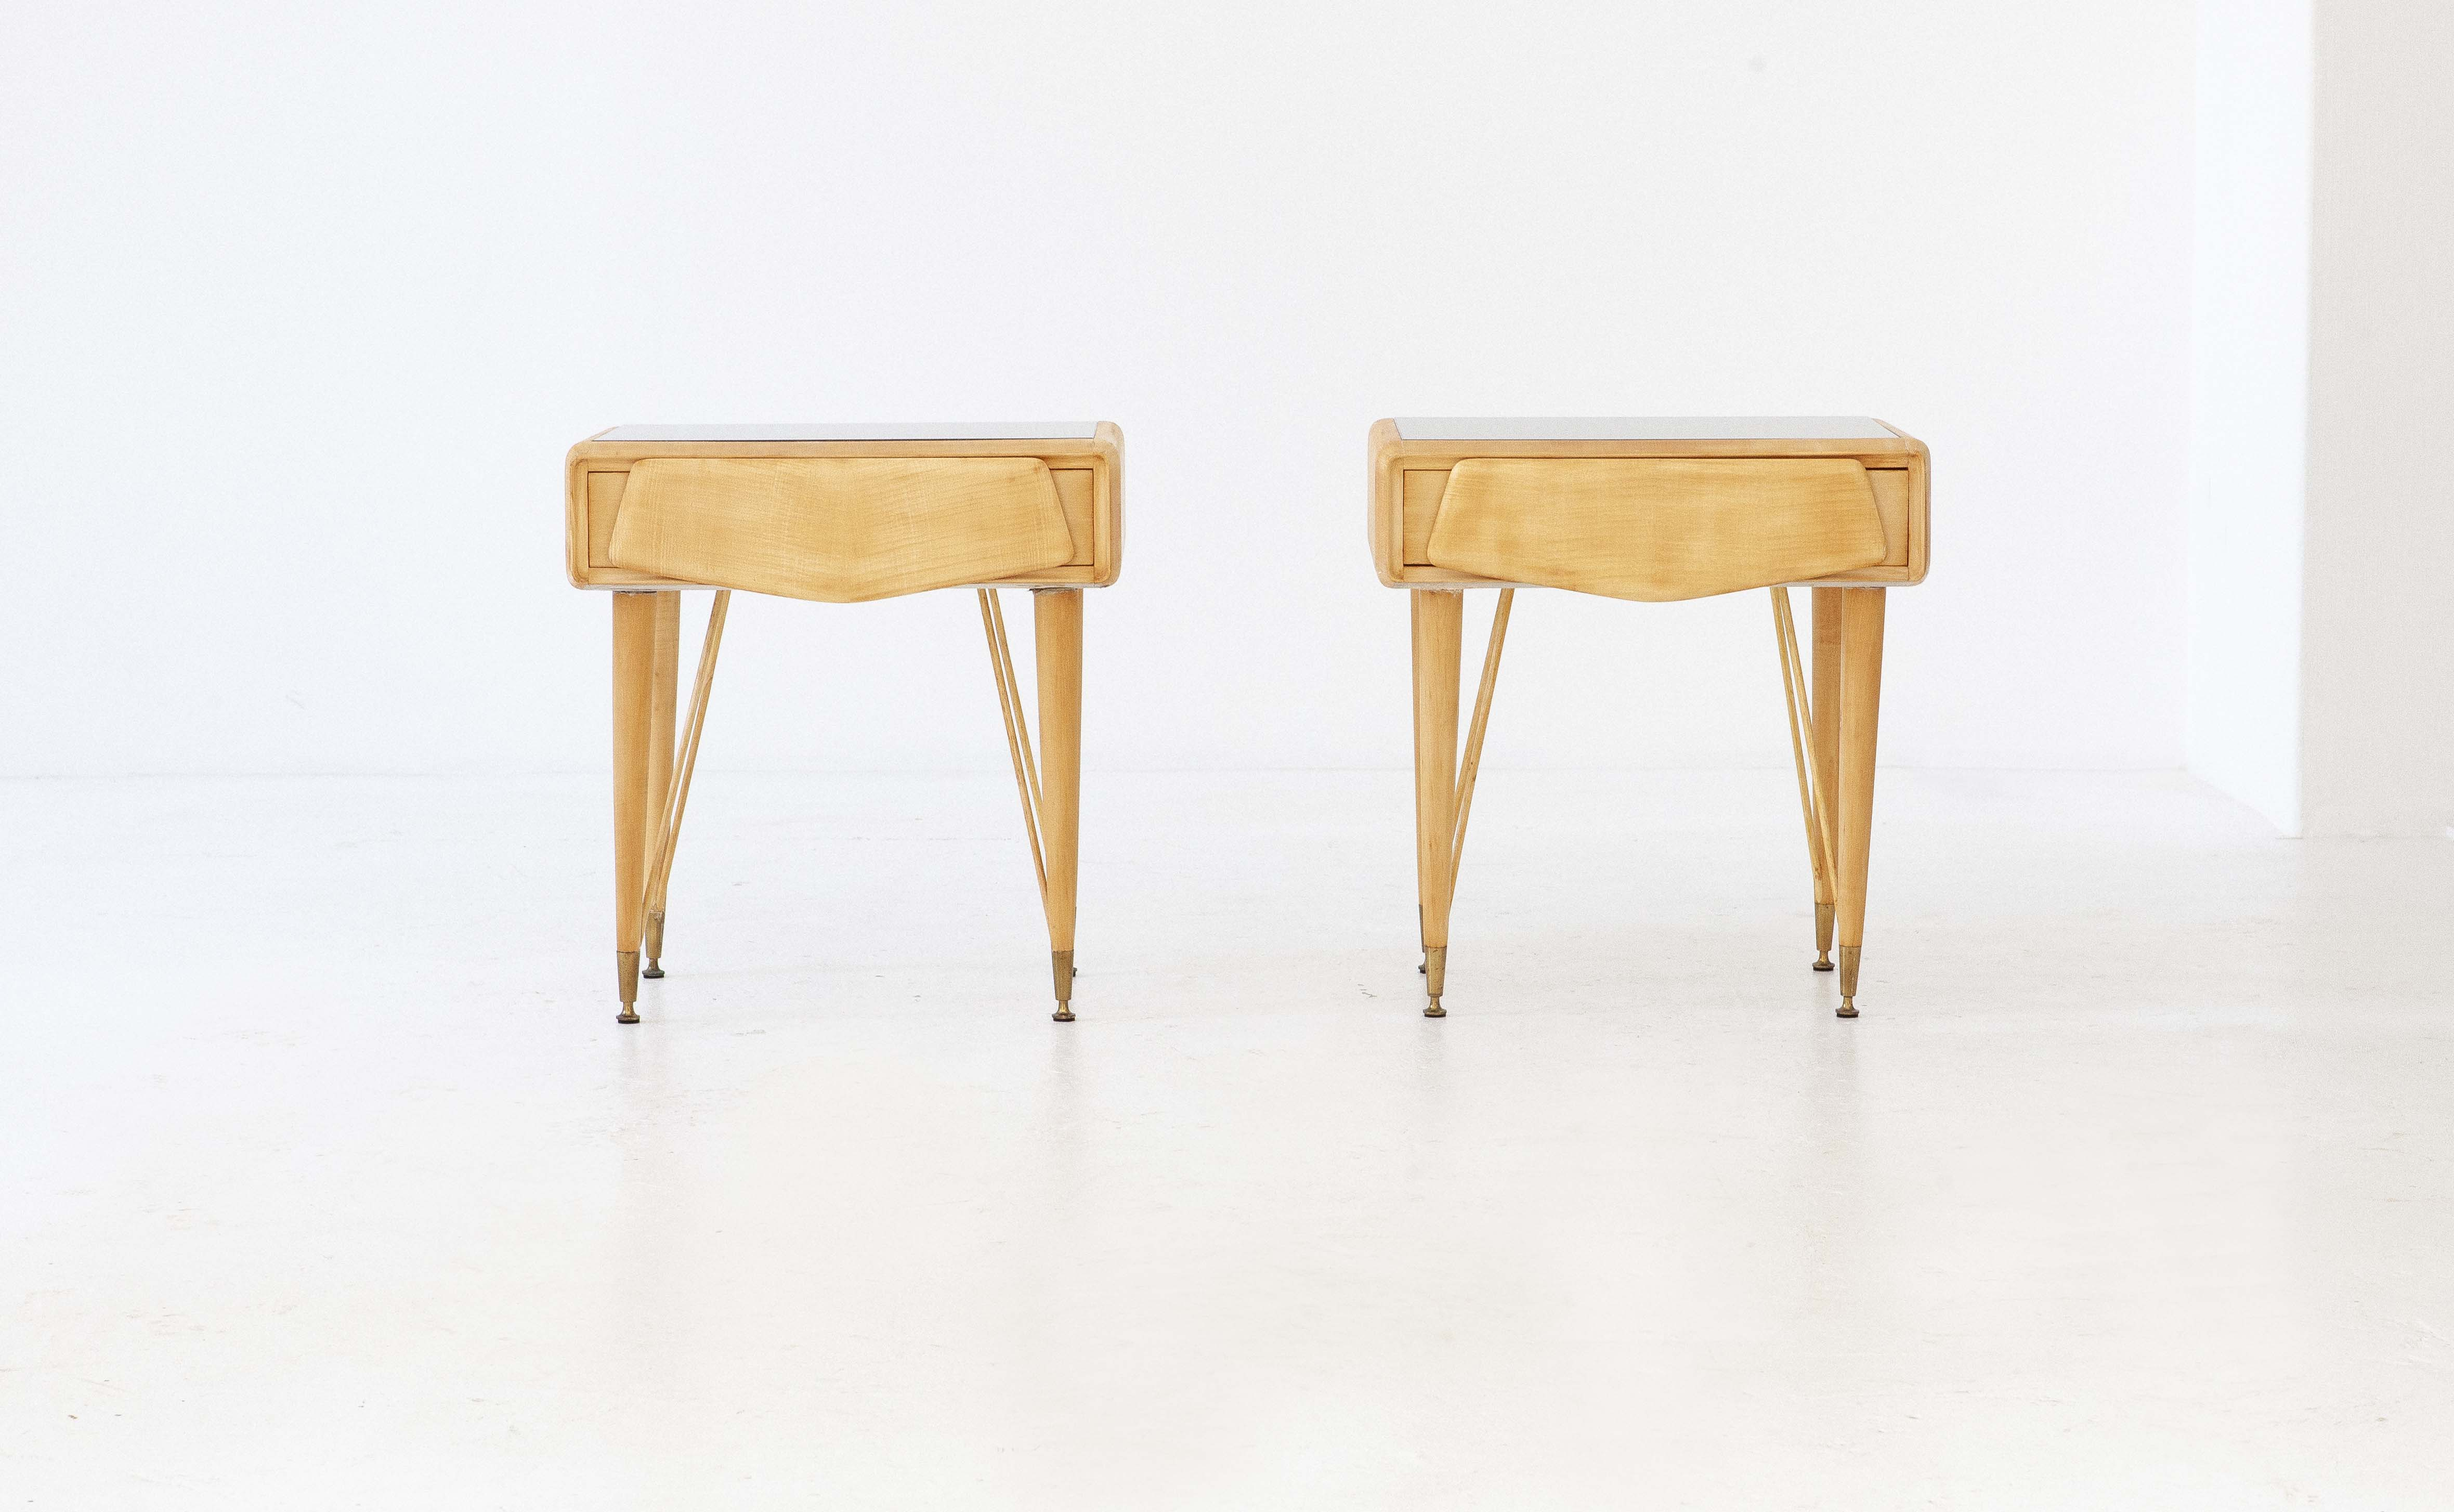 italian-mable-wood-glass-brass-bedside-tables-5-BT77